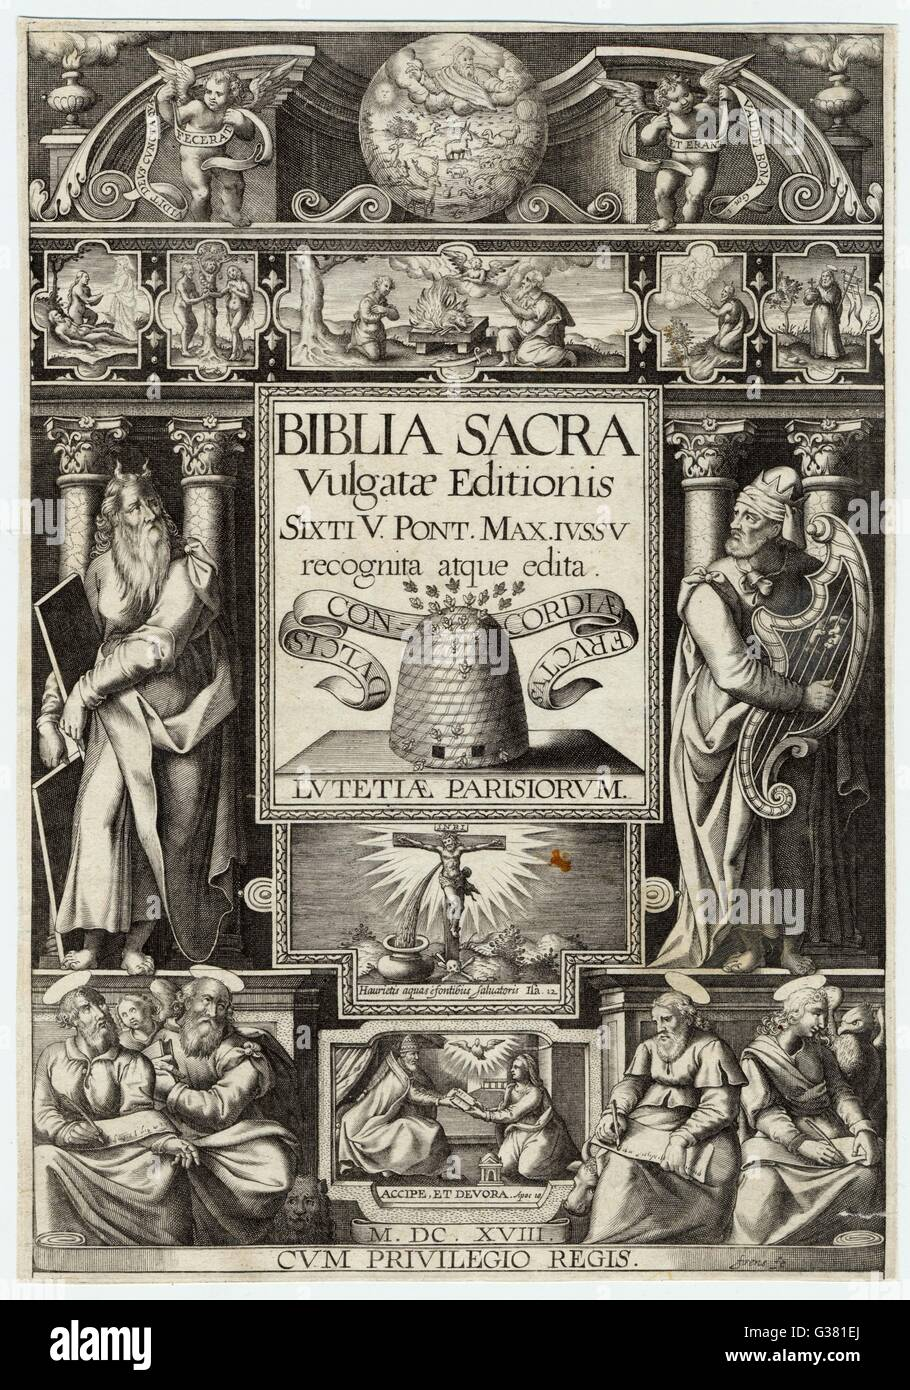 The title page of the Vulgate  Bible (printed in Latin)         Date: circa 1590 - Stock Image